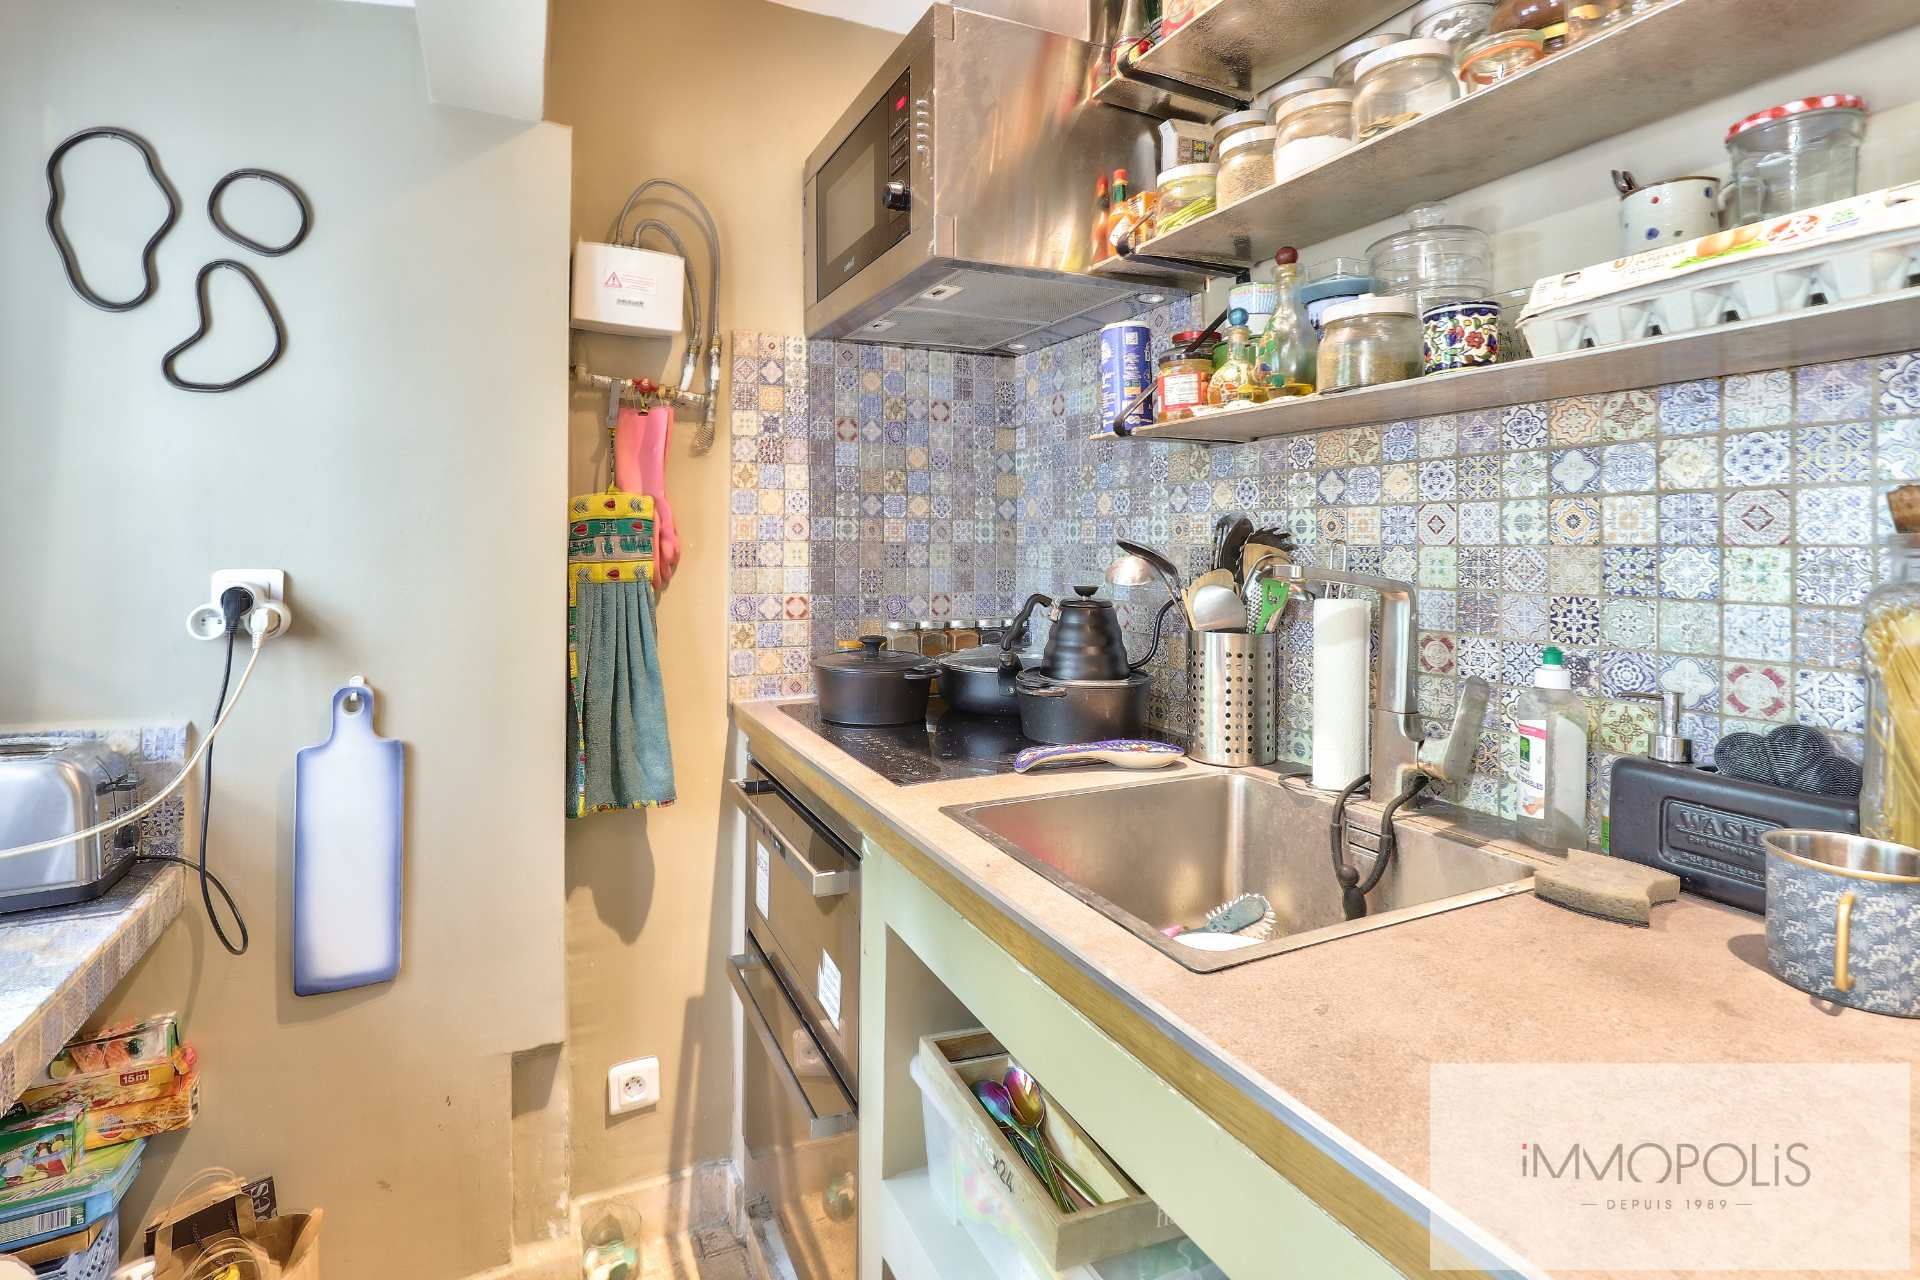 Montmartre, rue Gabrielle, beautiful 2 rooms completely renovated with stones, bricks and exposed beams: like a house! 6